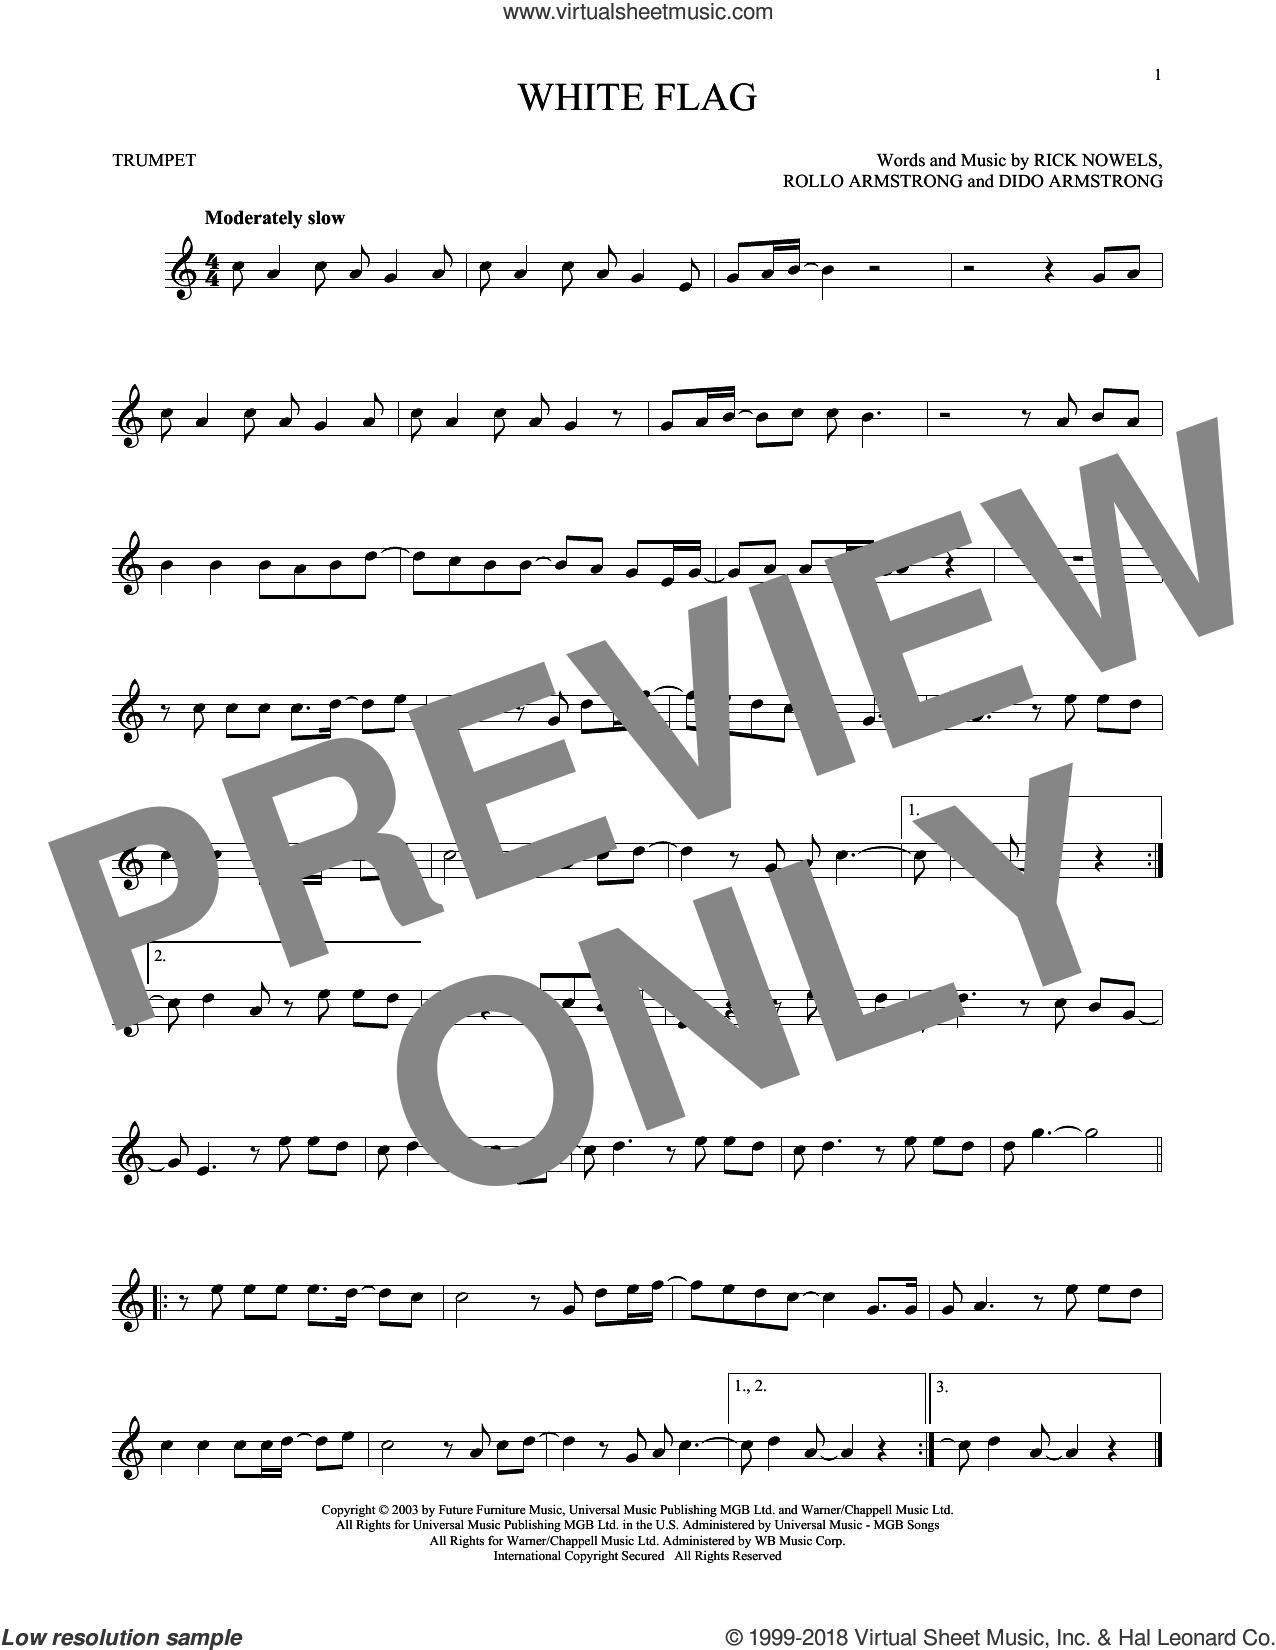 White Flag sheet music for trumpet solo by Dido Armstrong, Rick Nowels and Rollo Armstrong, intermediate skill level